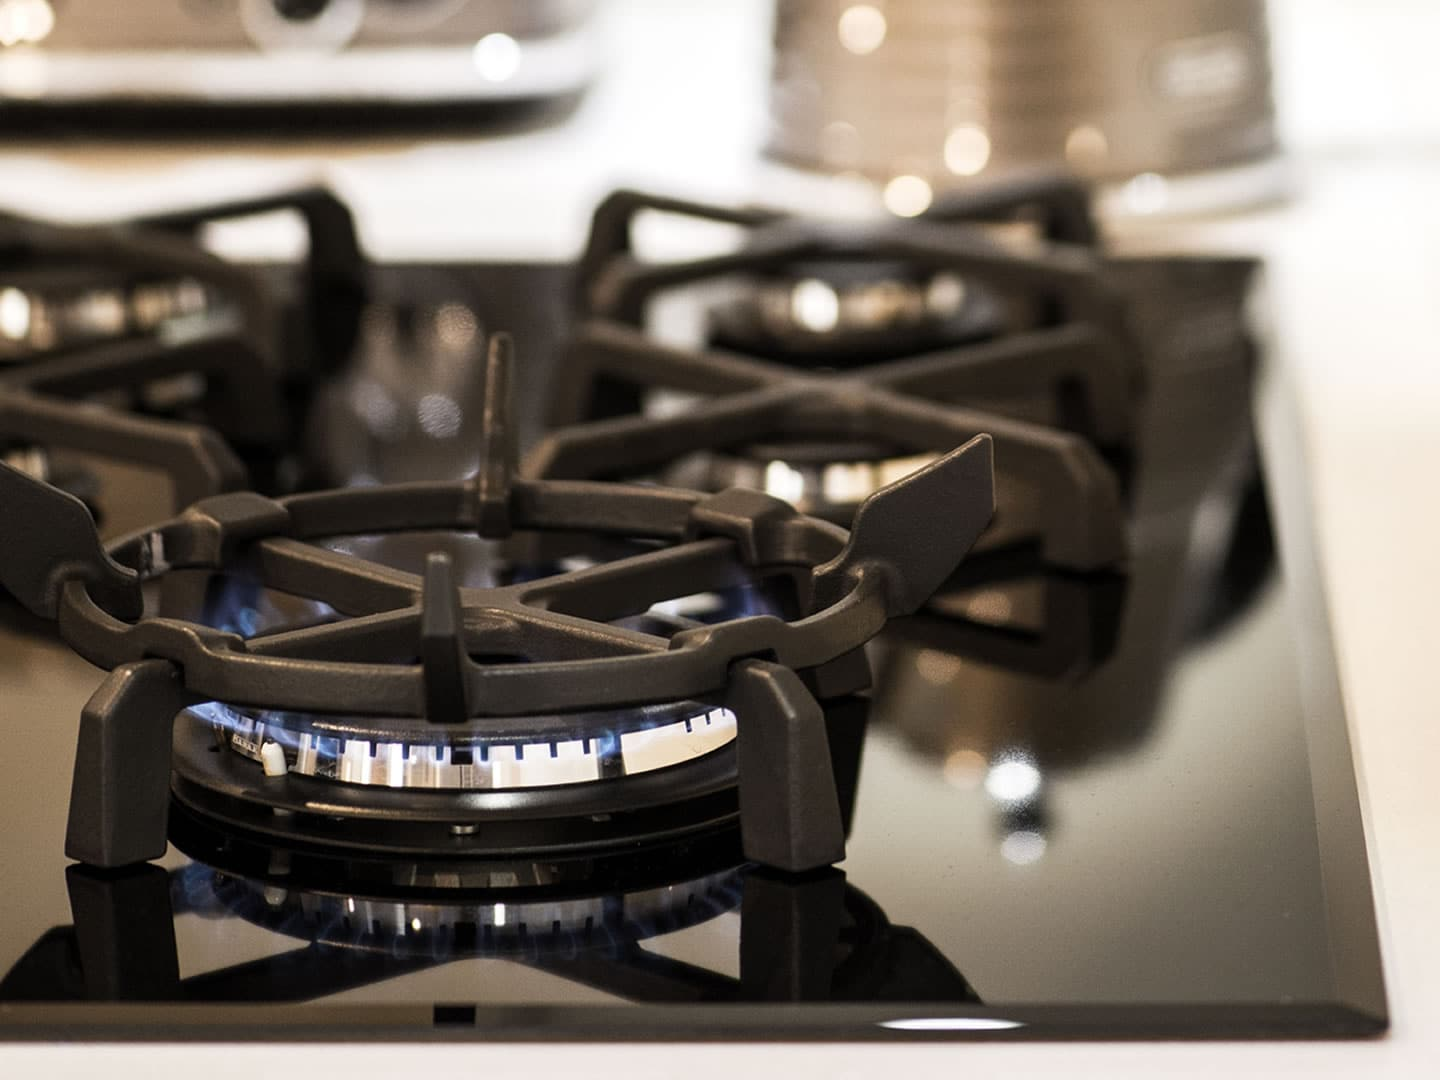 Gas Cooktop 5 Burner - 90cm - Black Ceramic Glass DEGH90BG